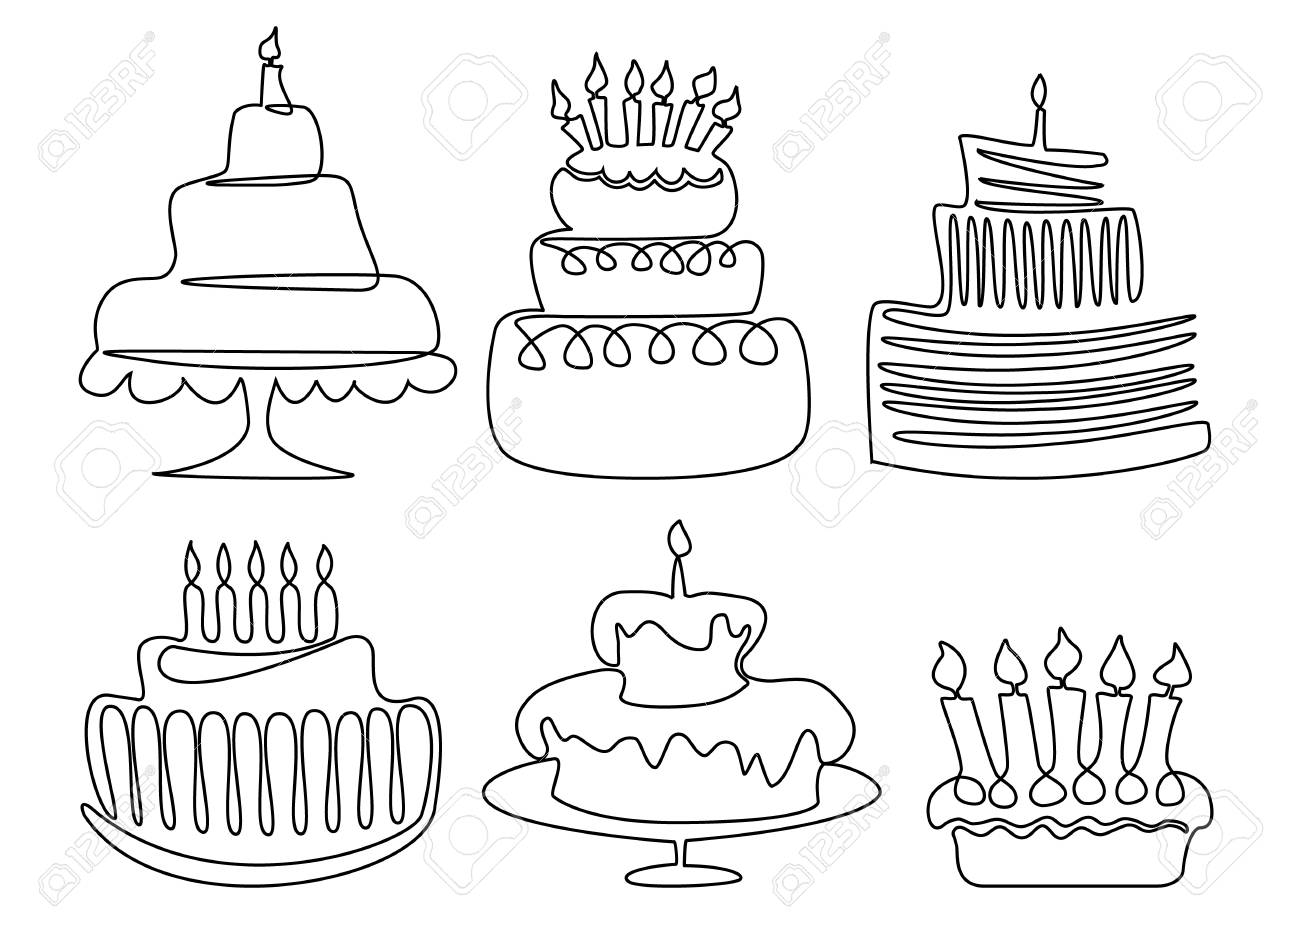 Birthday Cake One Line Drawing Royalty Free Cliparts Vectors And